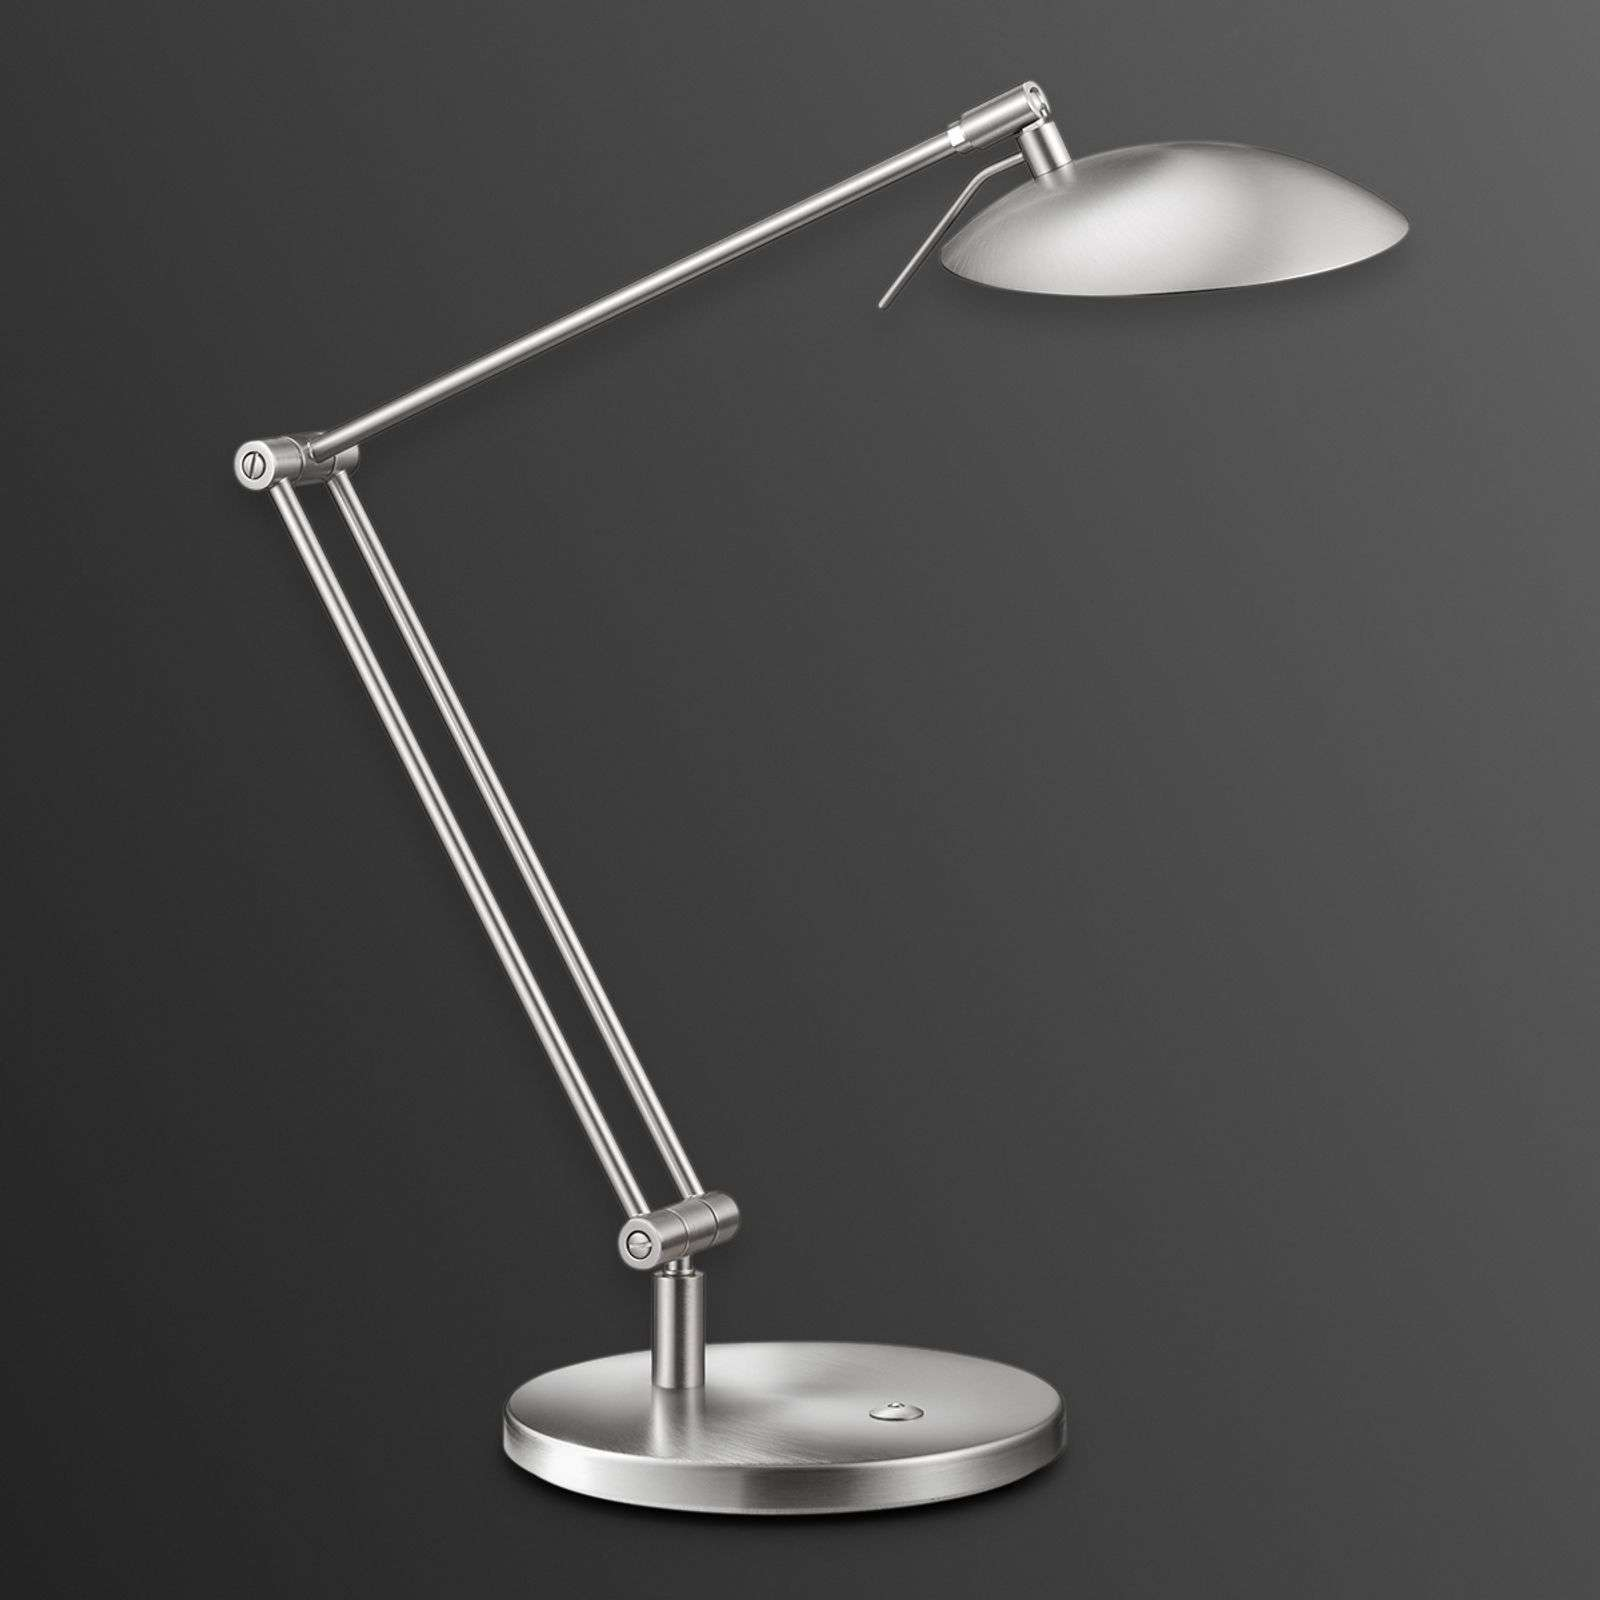 Fantastique lampe de bureau LED COIRA nickel mat